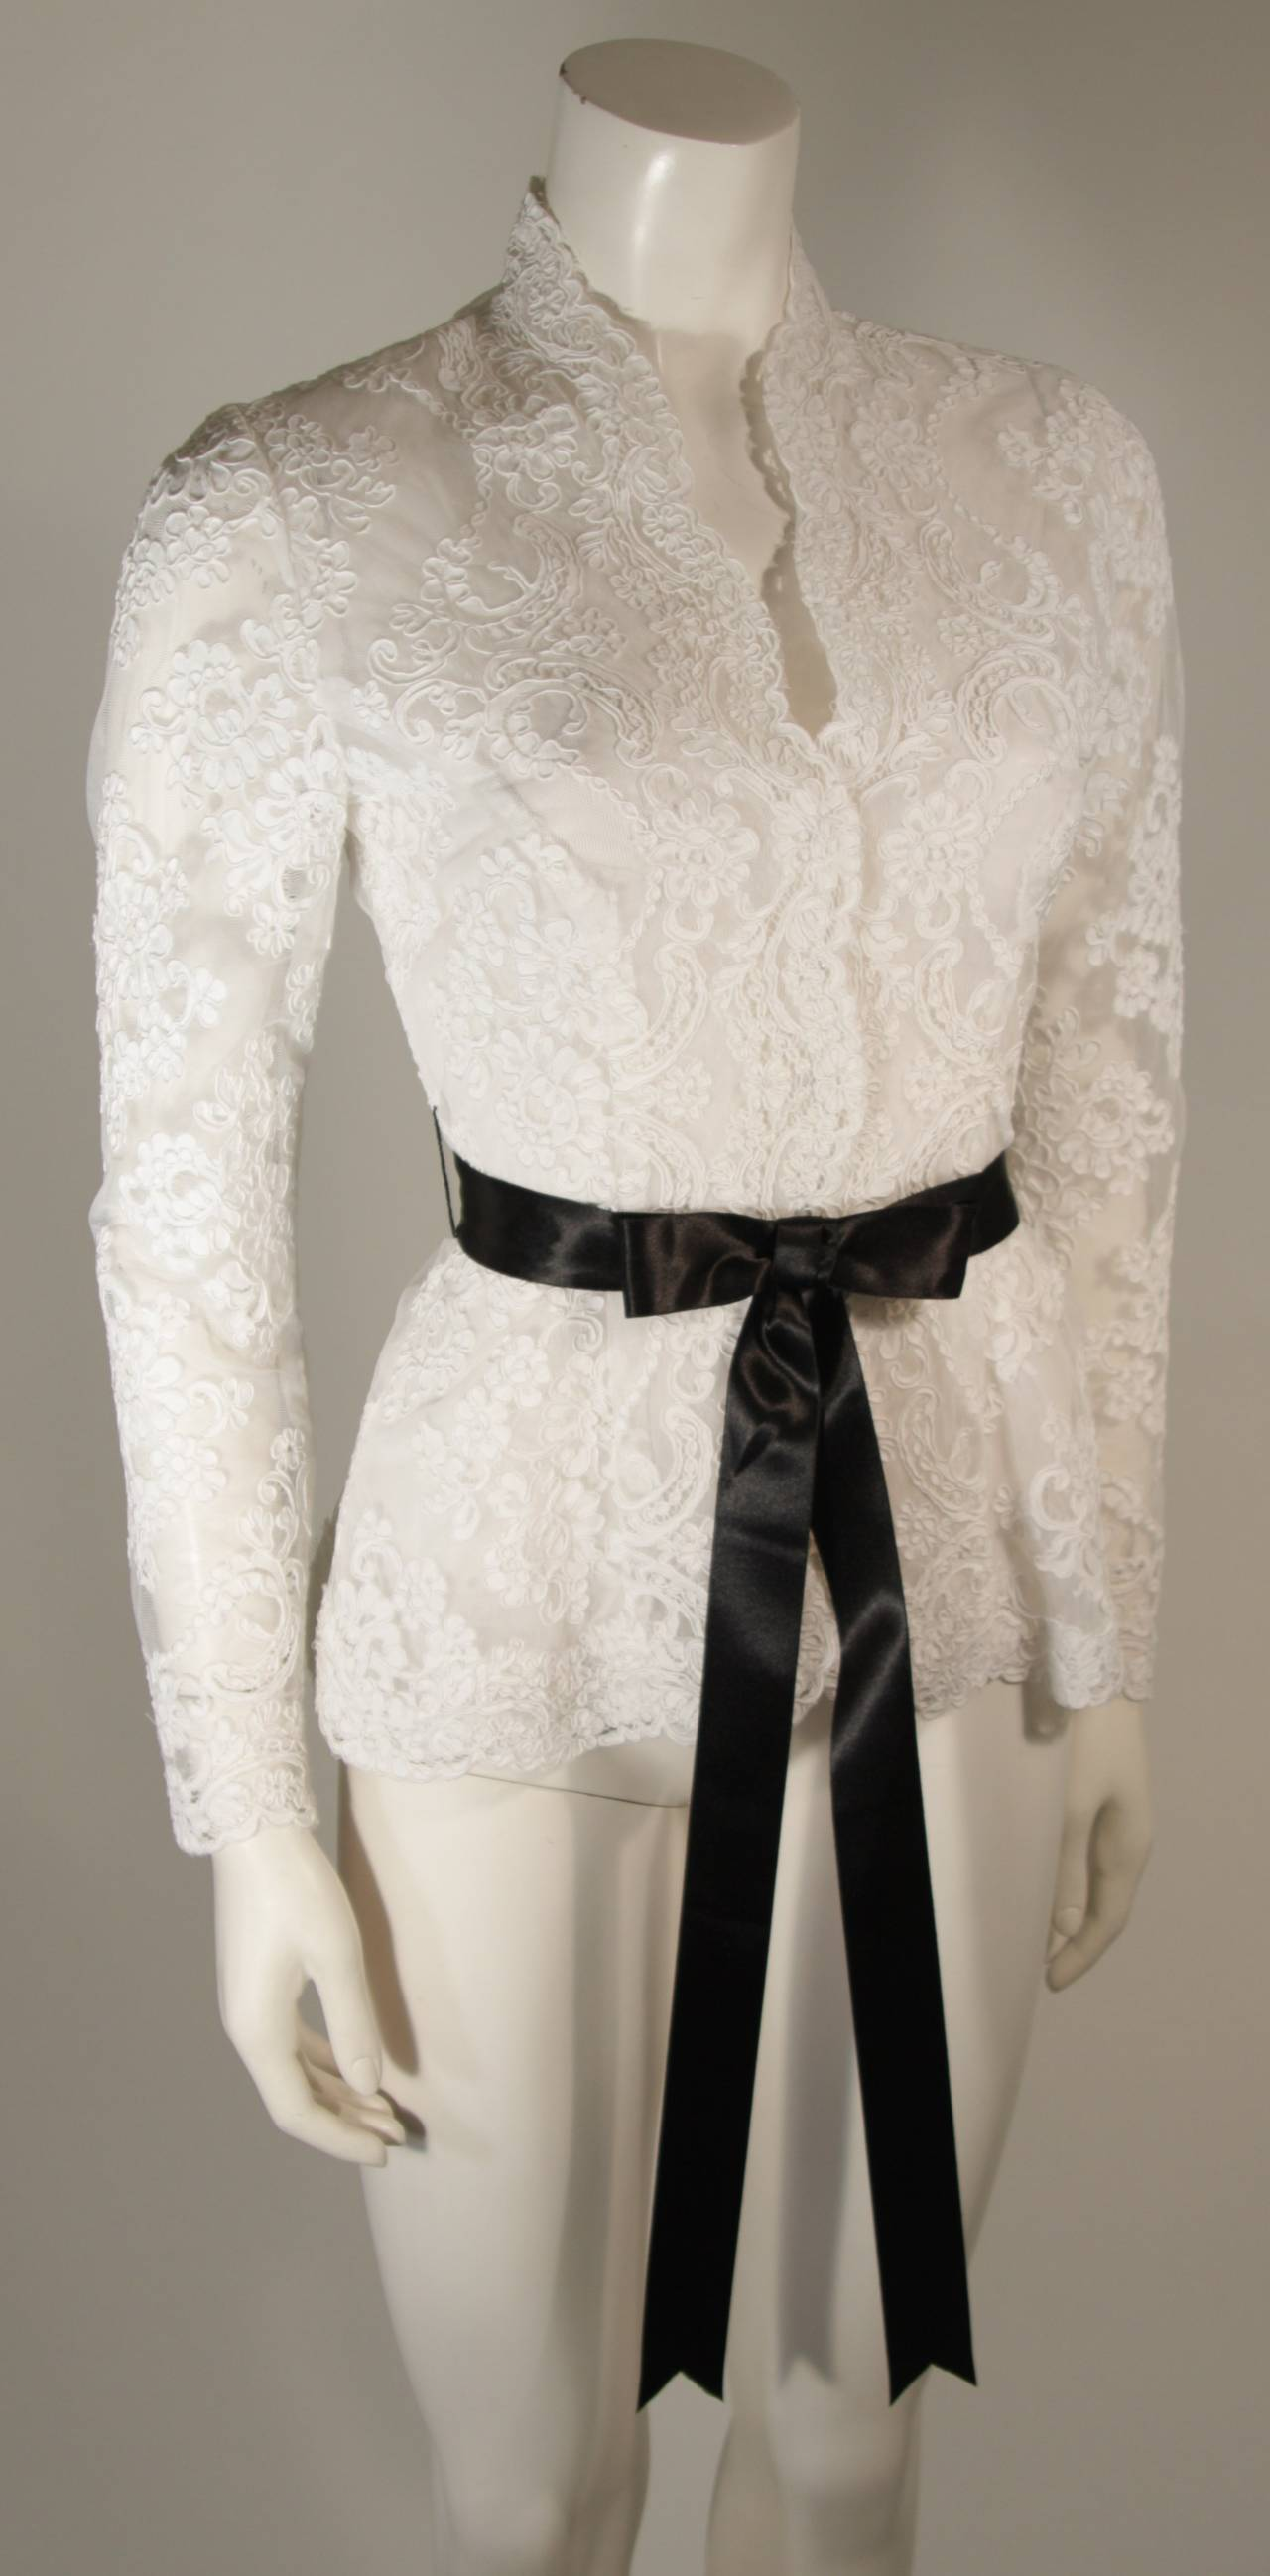 This Victor Costa blouse is composed of a striking white lace and features scalloped edges. There are center front snap closures. In excellent condition.   **Please cross-reference measurements for personal accuracy. The size listed in the